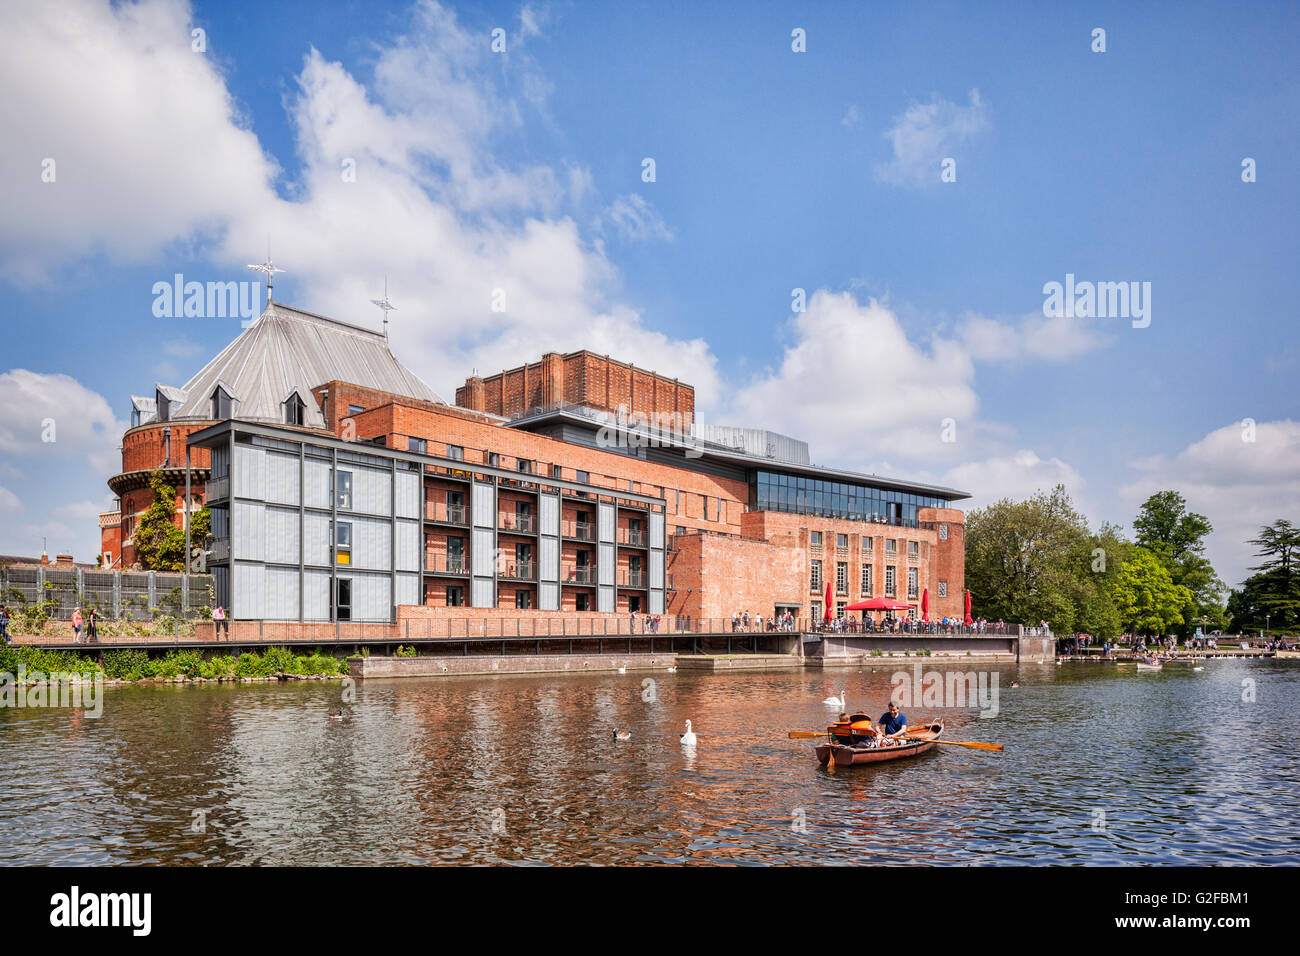 Royal Shakespeare Theatre and the River Avon and  people in boats on the river on a sunny weekend in late spring, - Stock Image